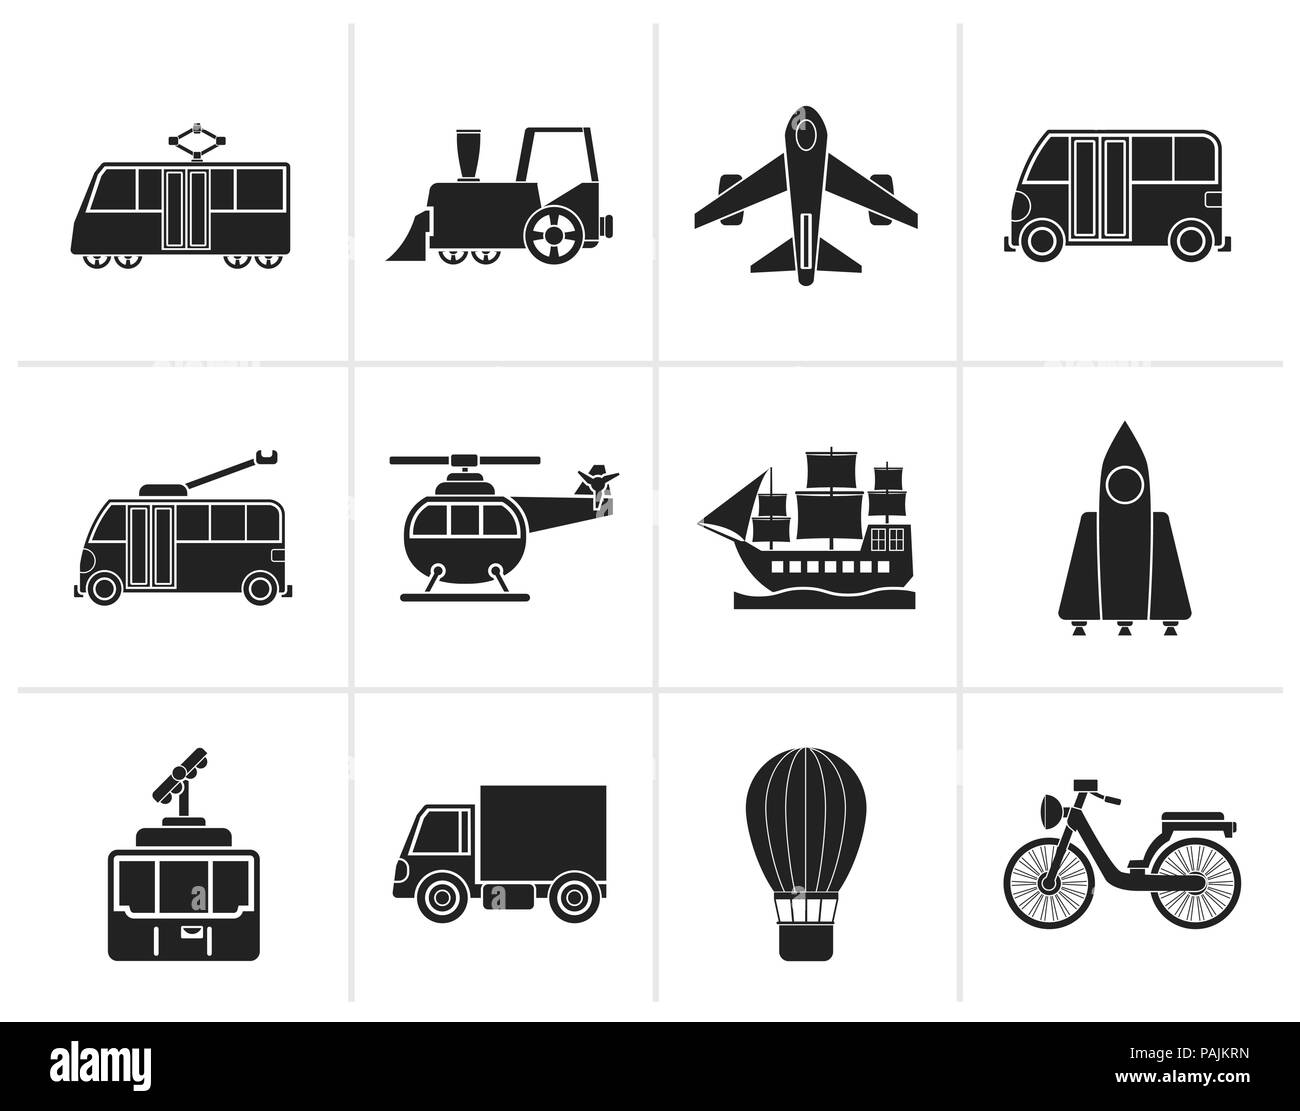 Black Travel and transportation icons - vector icon set - Stock Image